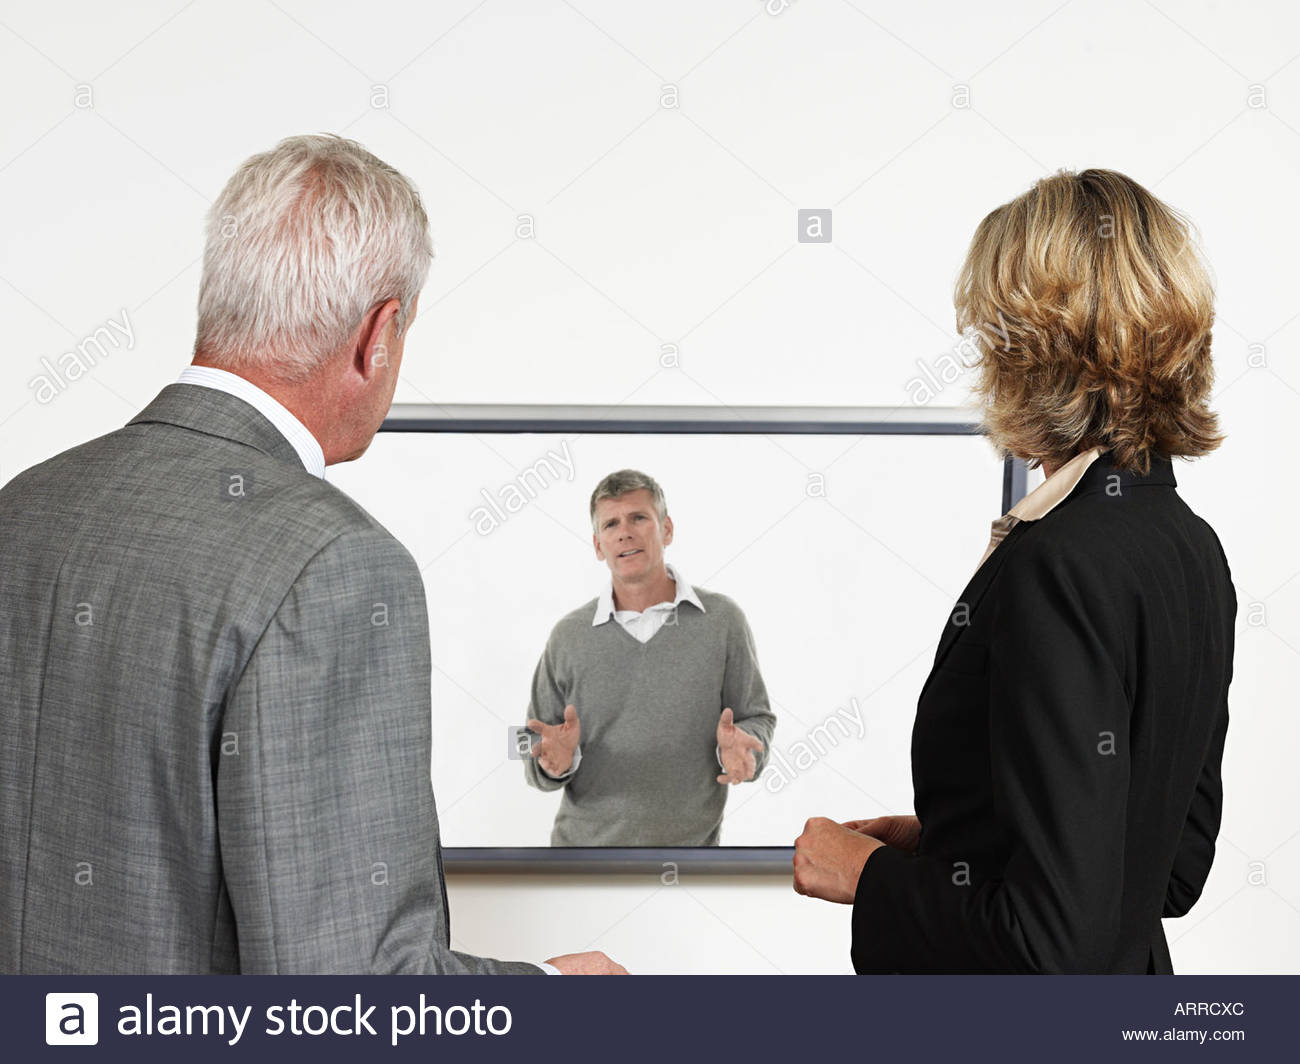 Video conference - Stock Image